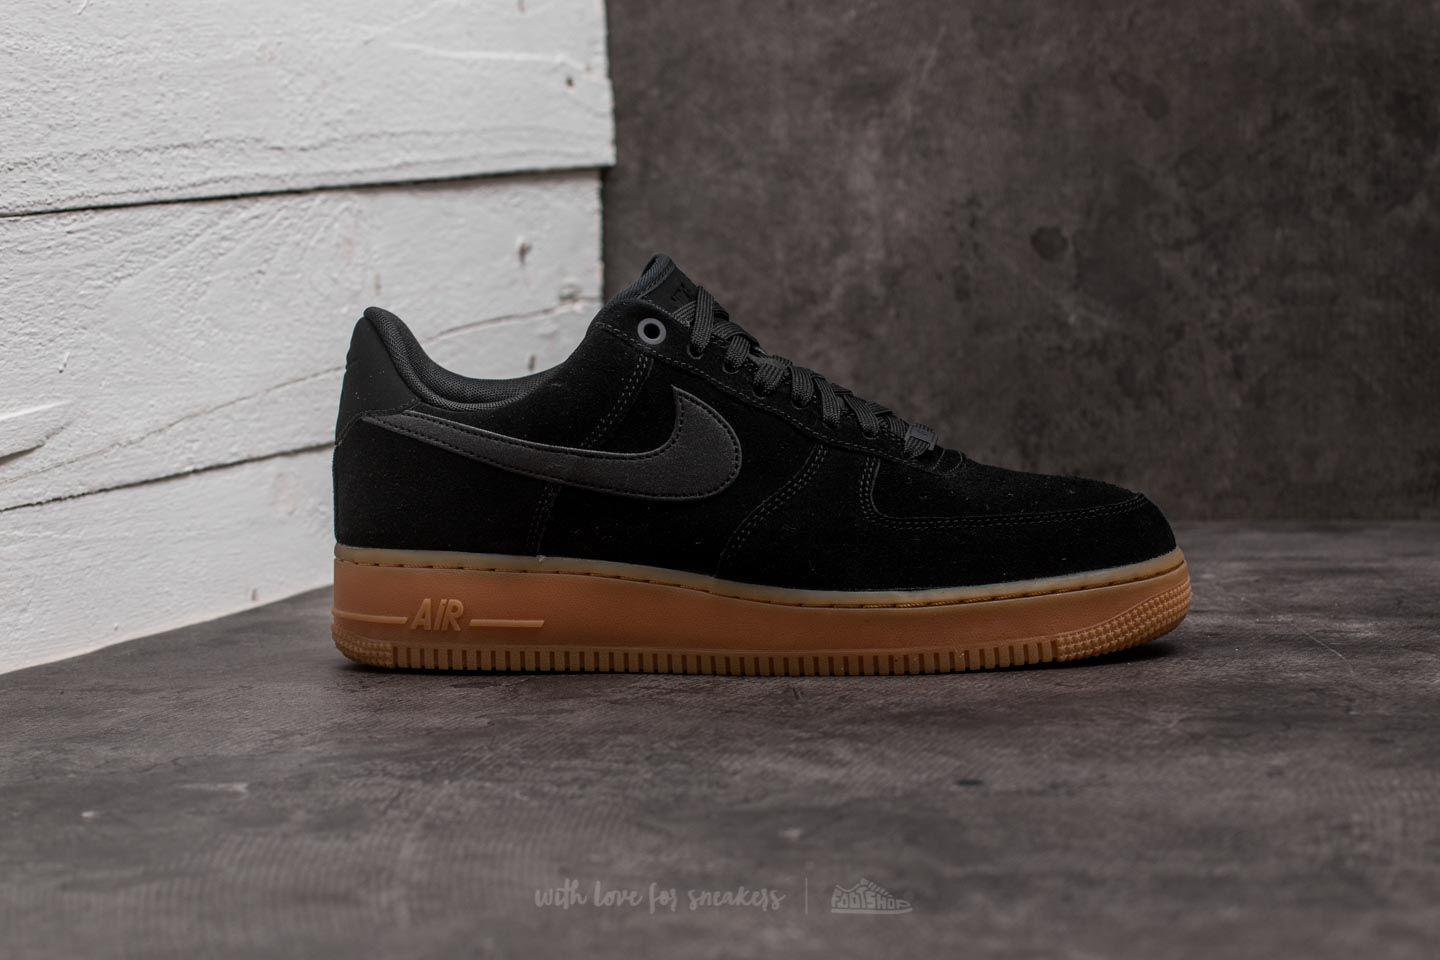 Nike - Air Force 1 '07 Lv8 Suede Black/ Black-gum Medium Brown. View fullscreen